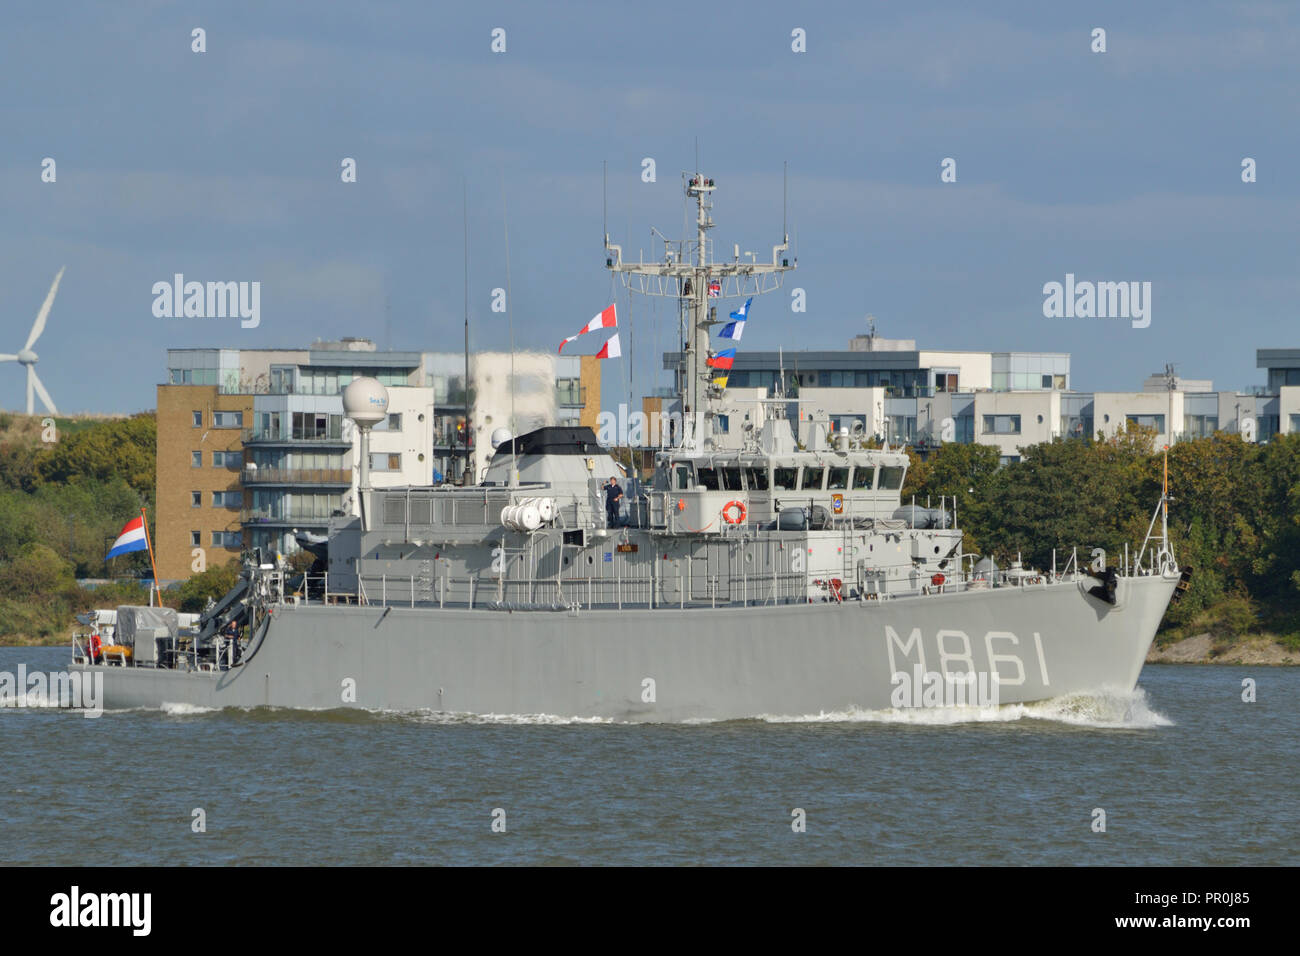 Royal Netherlands Navy Minesweeper on the River Thames in London during a port visit - Stock Image